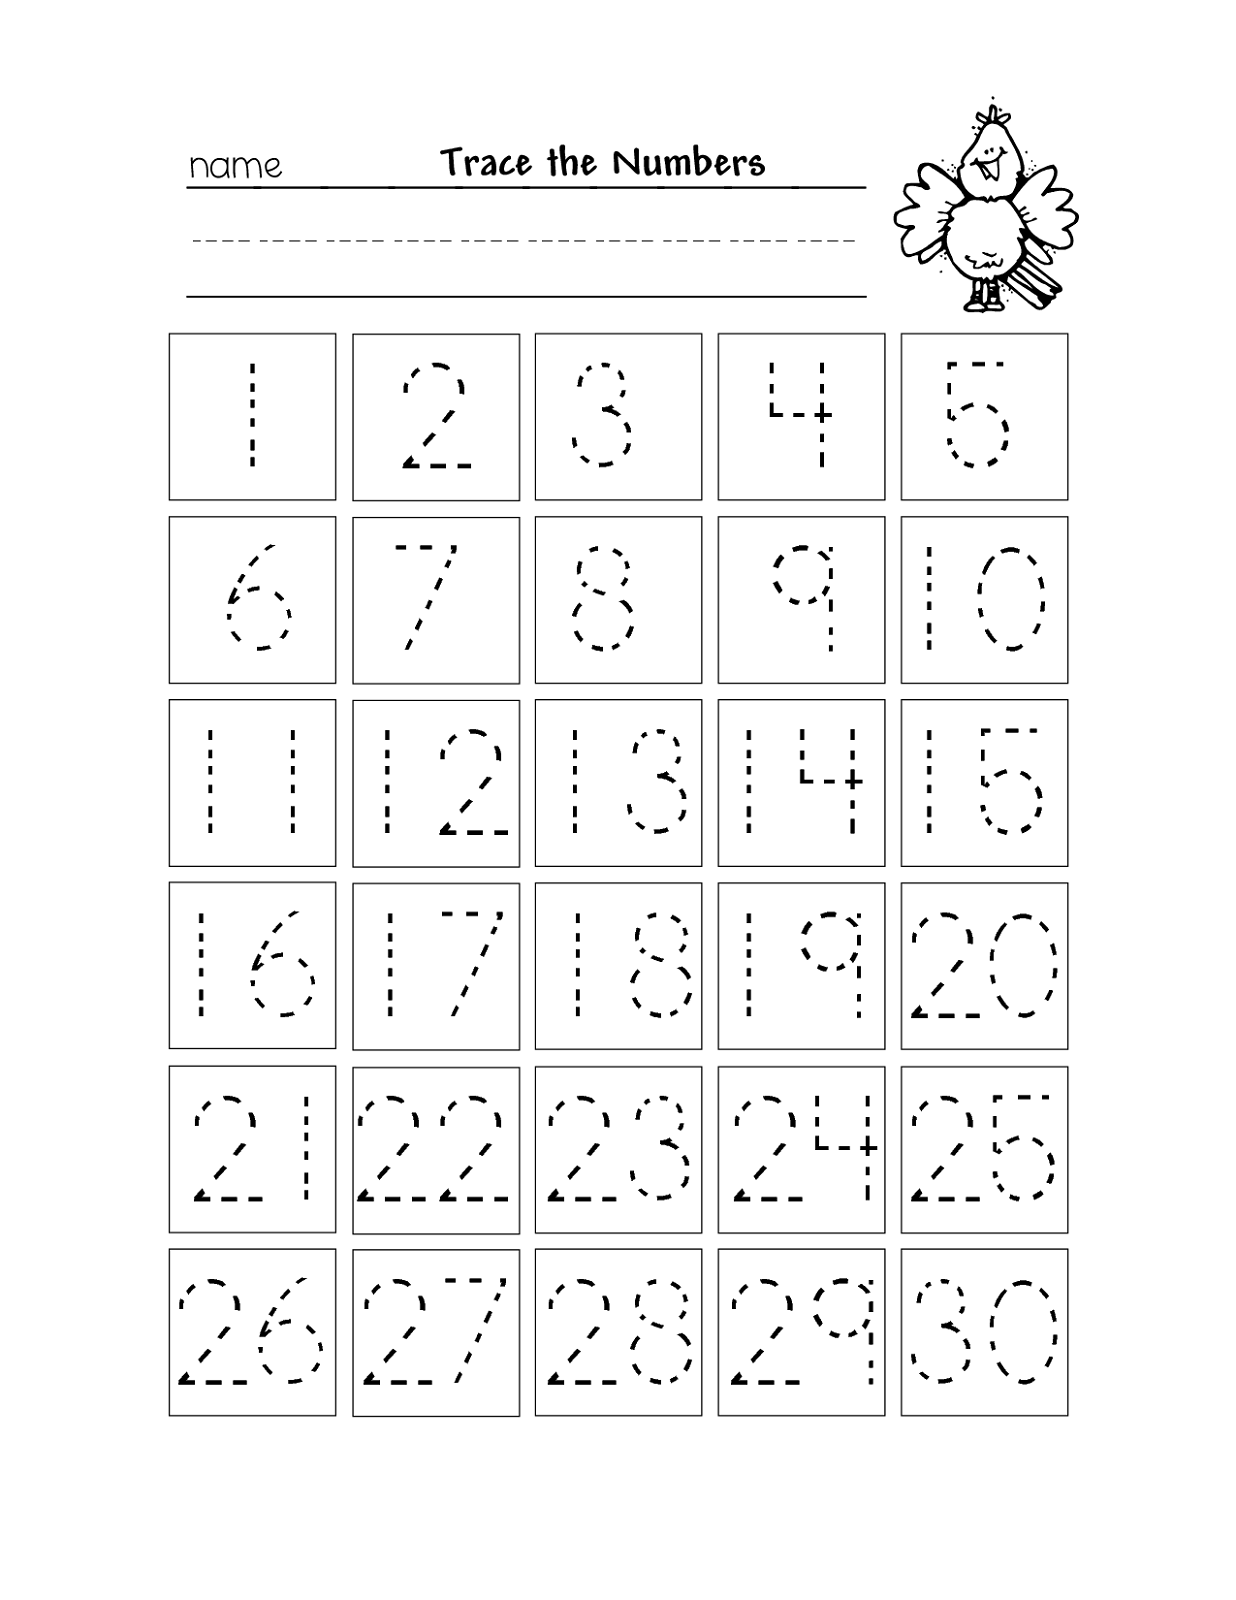 Trace the Numbers for the First Level Numbers preschool